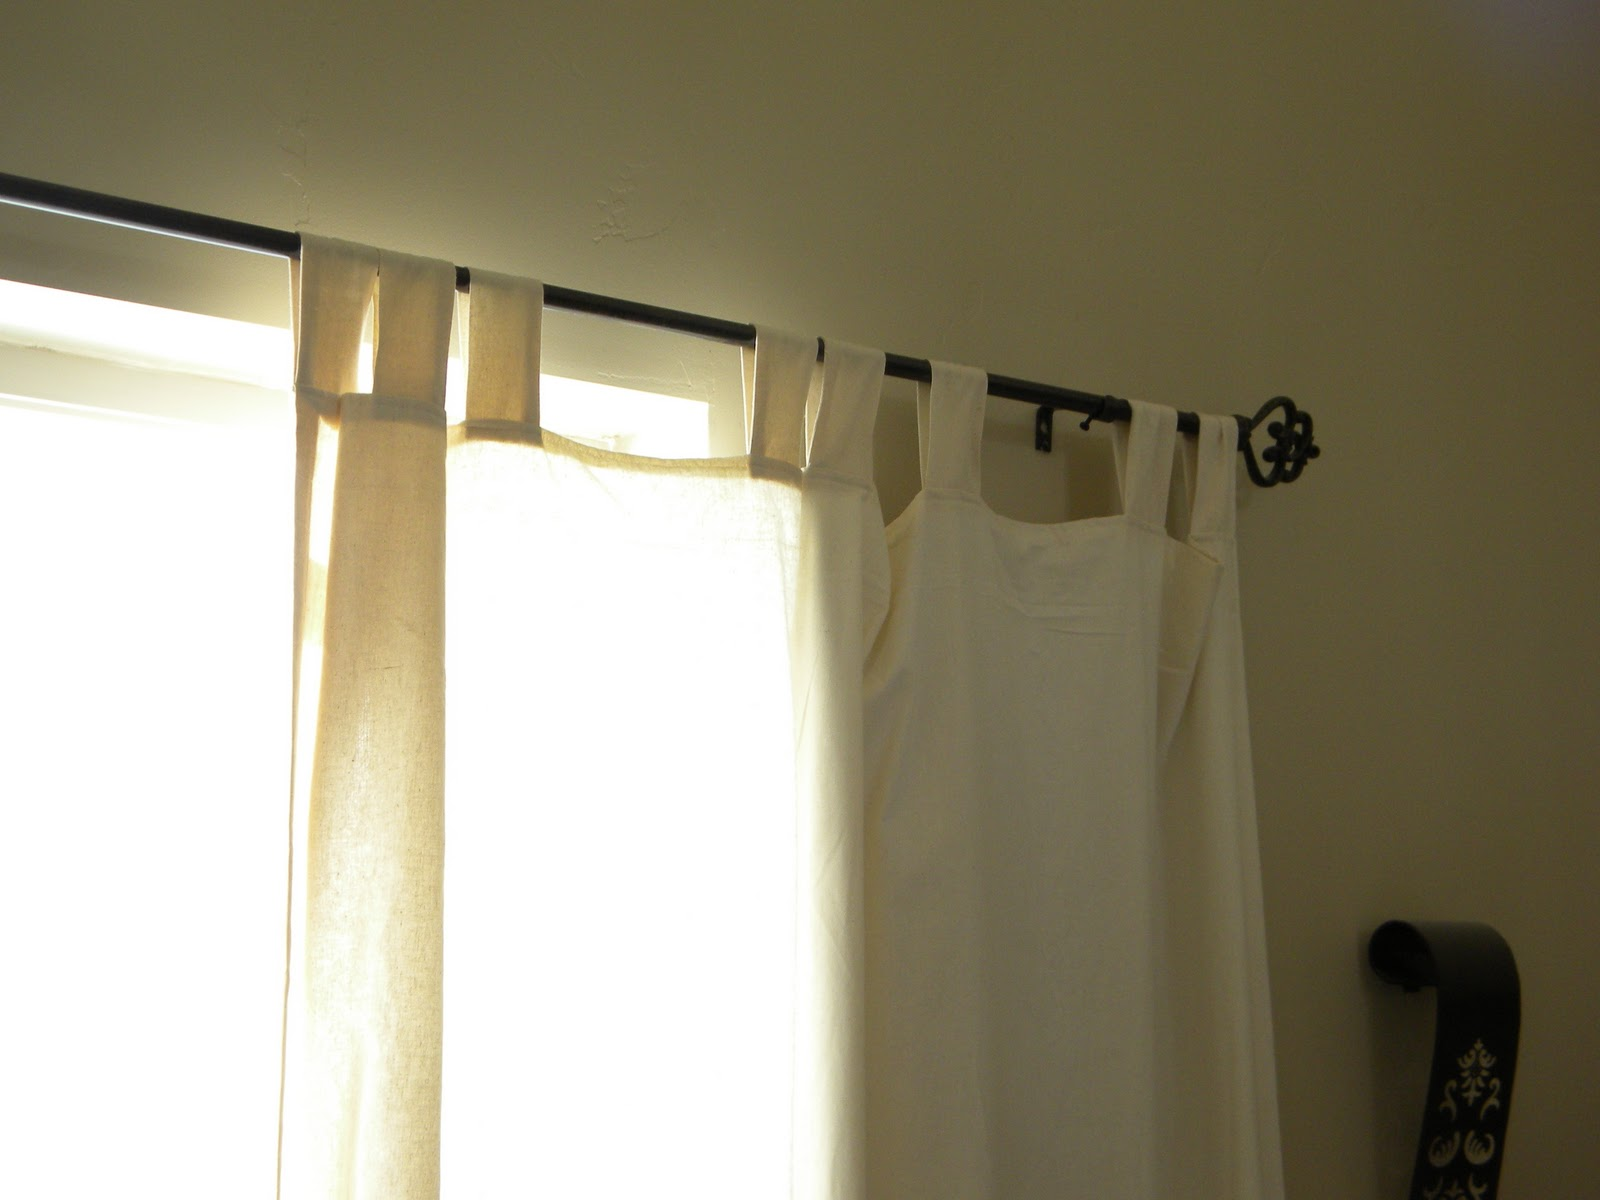 Diy Automatic Curtains Thrifty And Chic Diy Projects And Home Decor